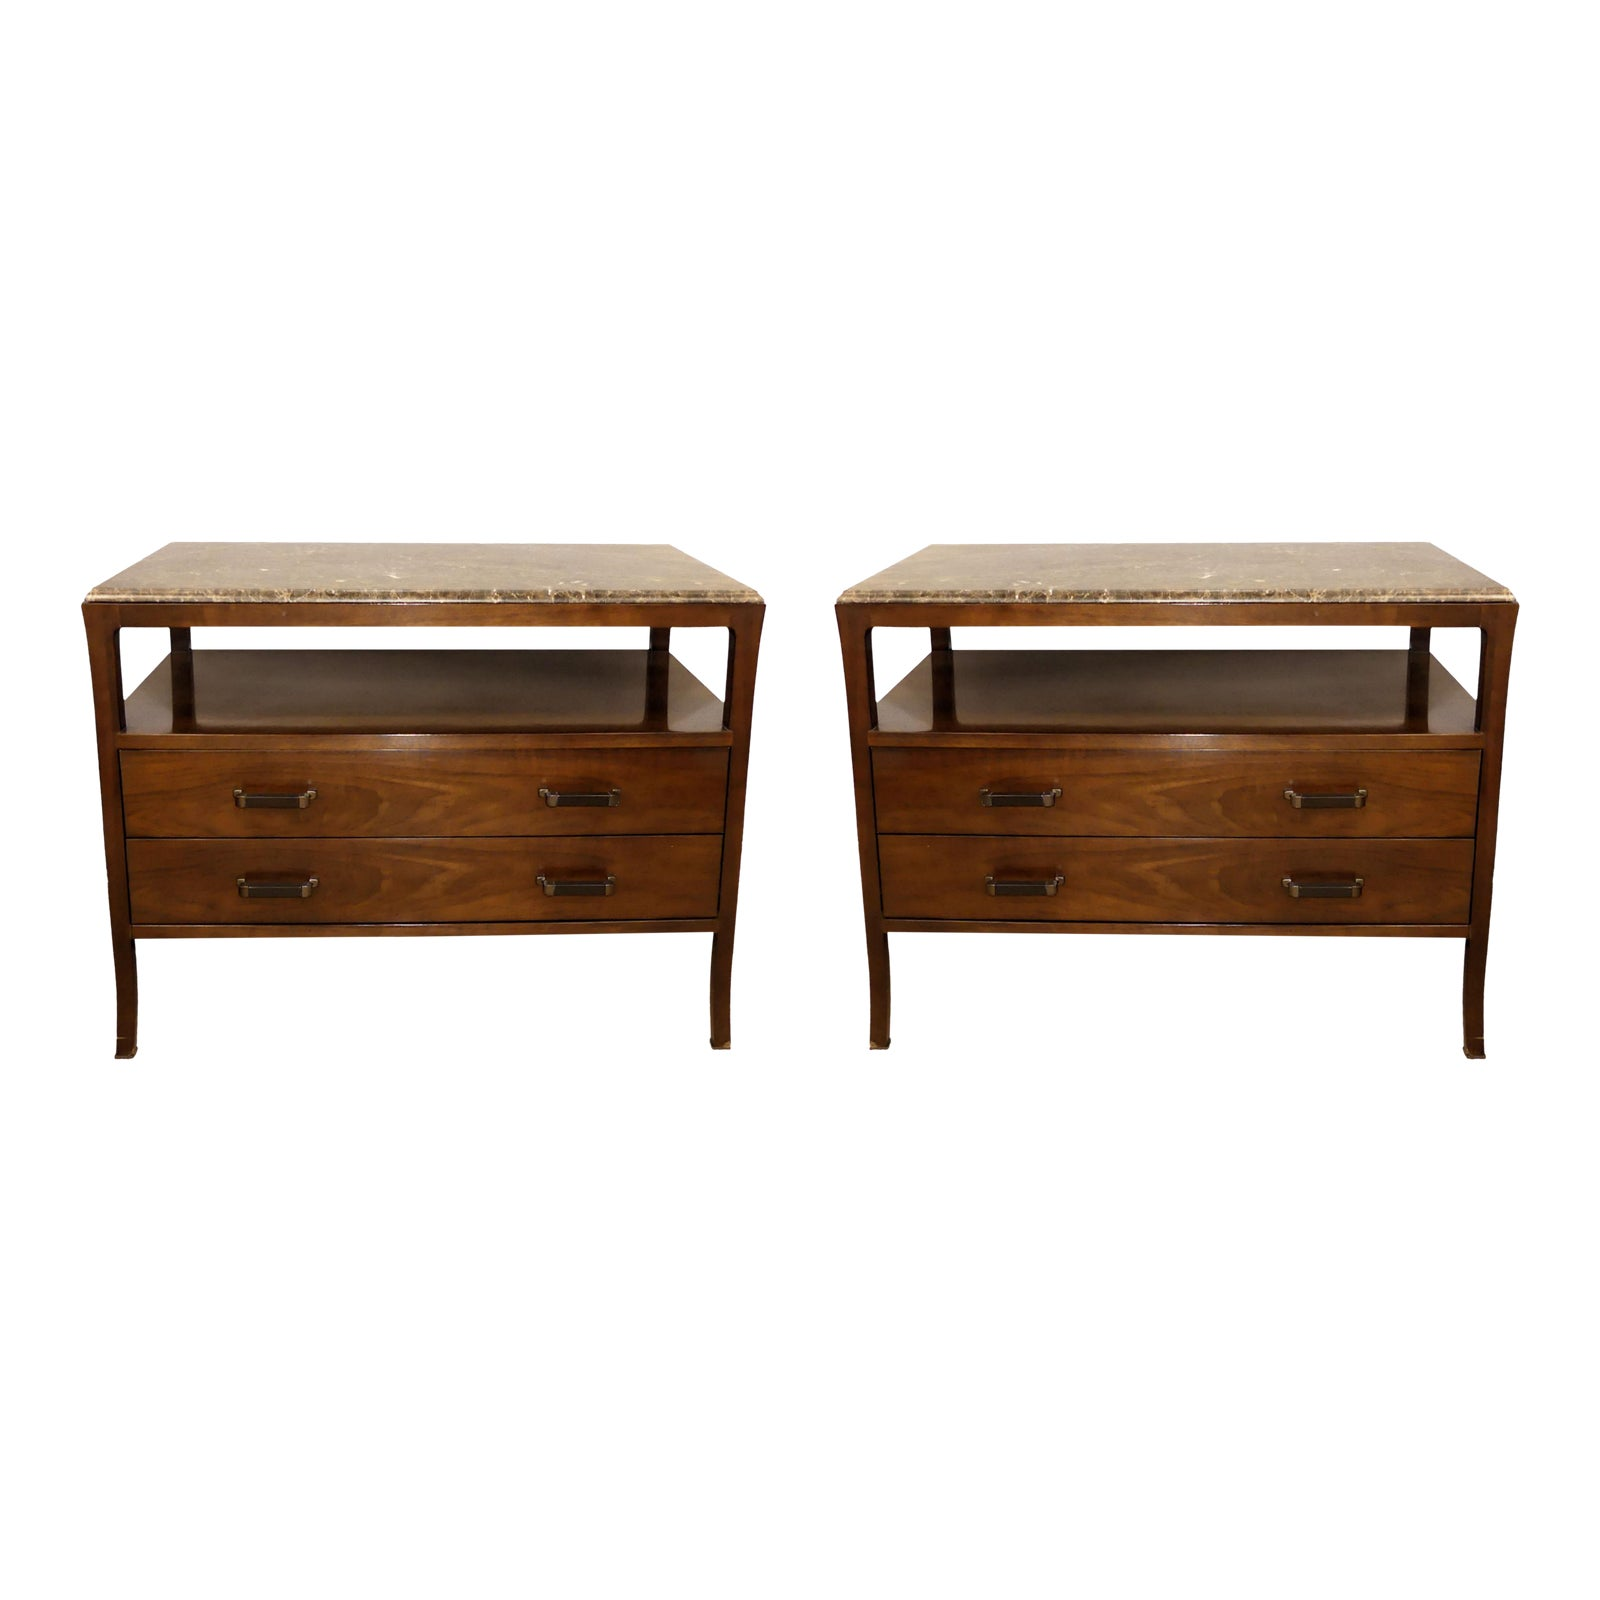 Baker Bill Sofield Studio Chests or Nightstands